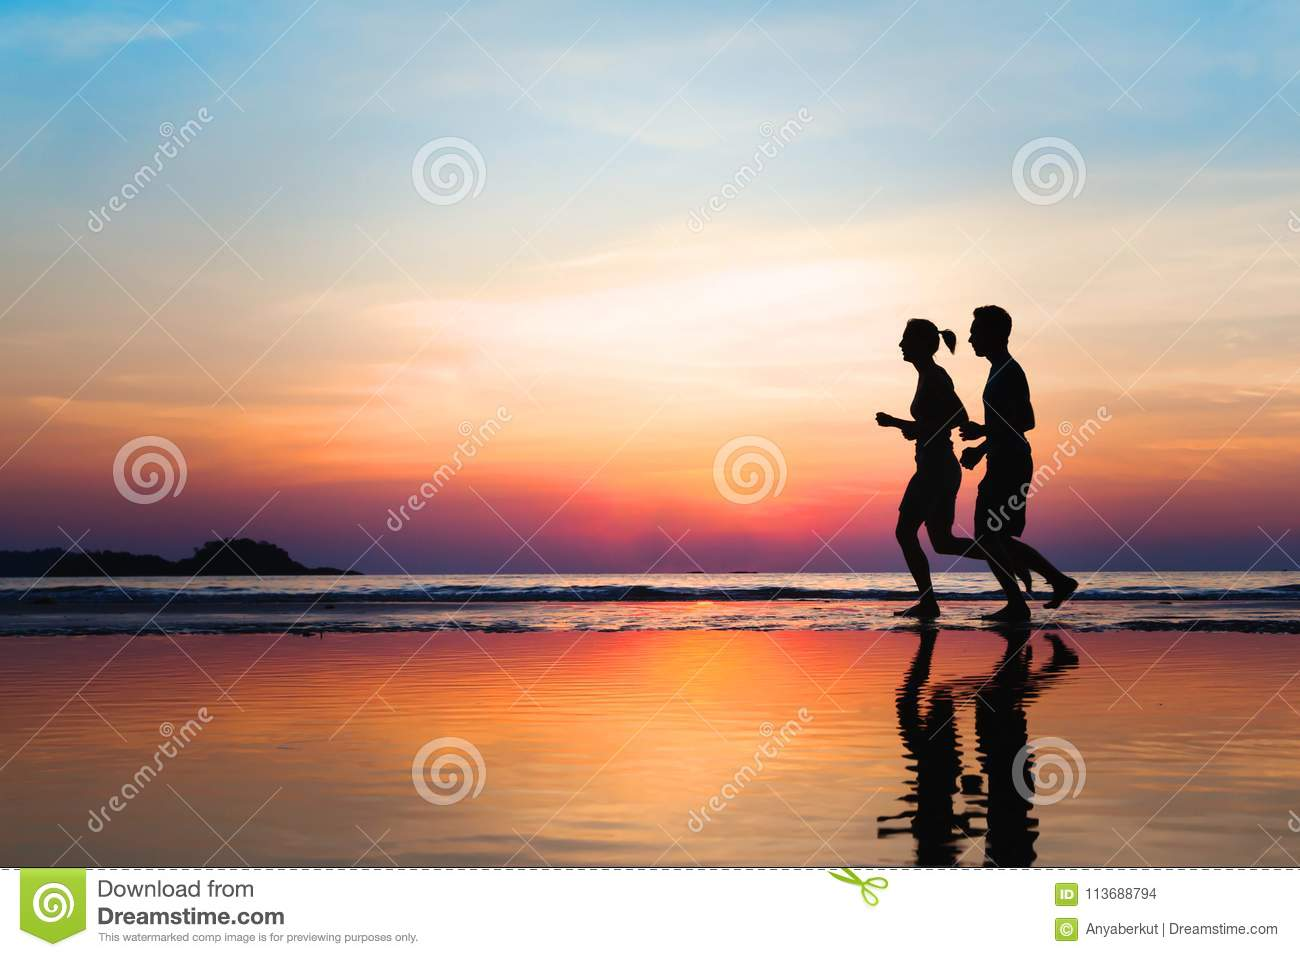 Jogging and healthy lifestyle, two runners silhouettes at sunset, workout and sport